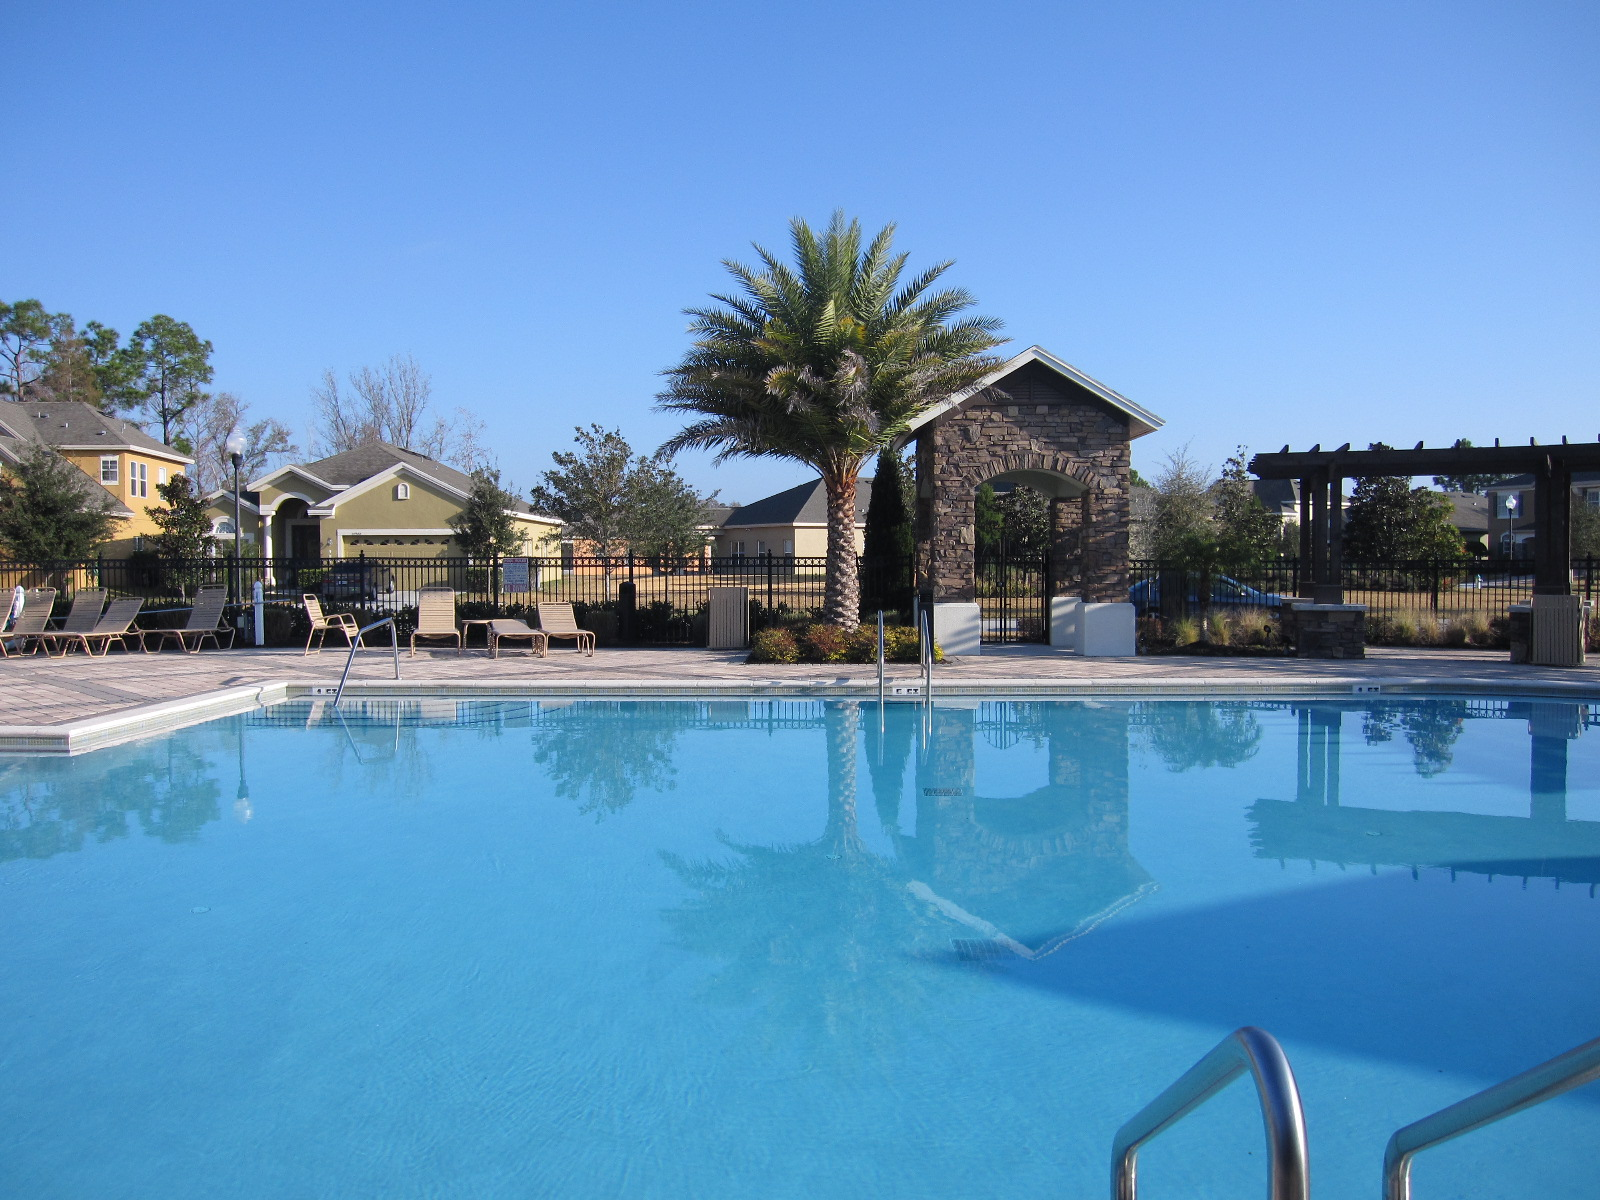 Pool property management companies in orlando american for Pool companies